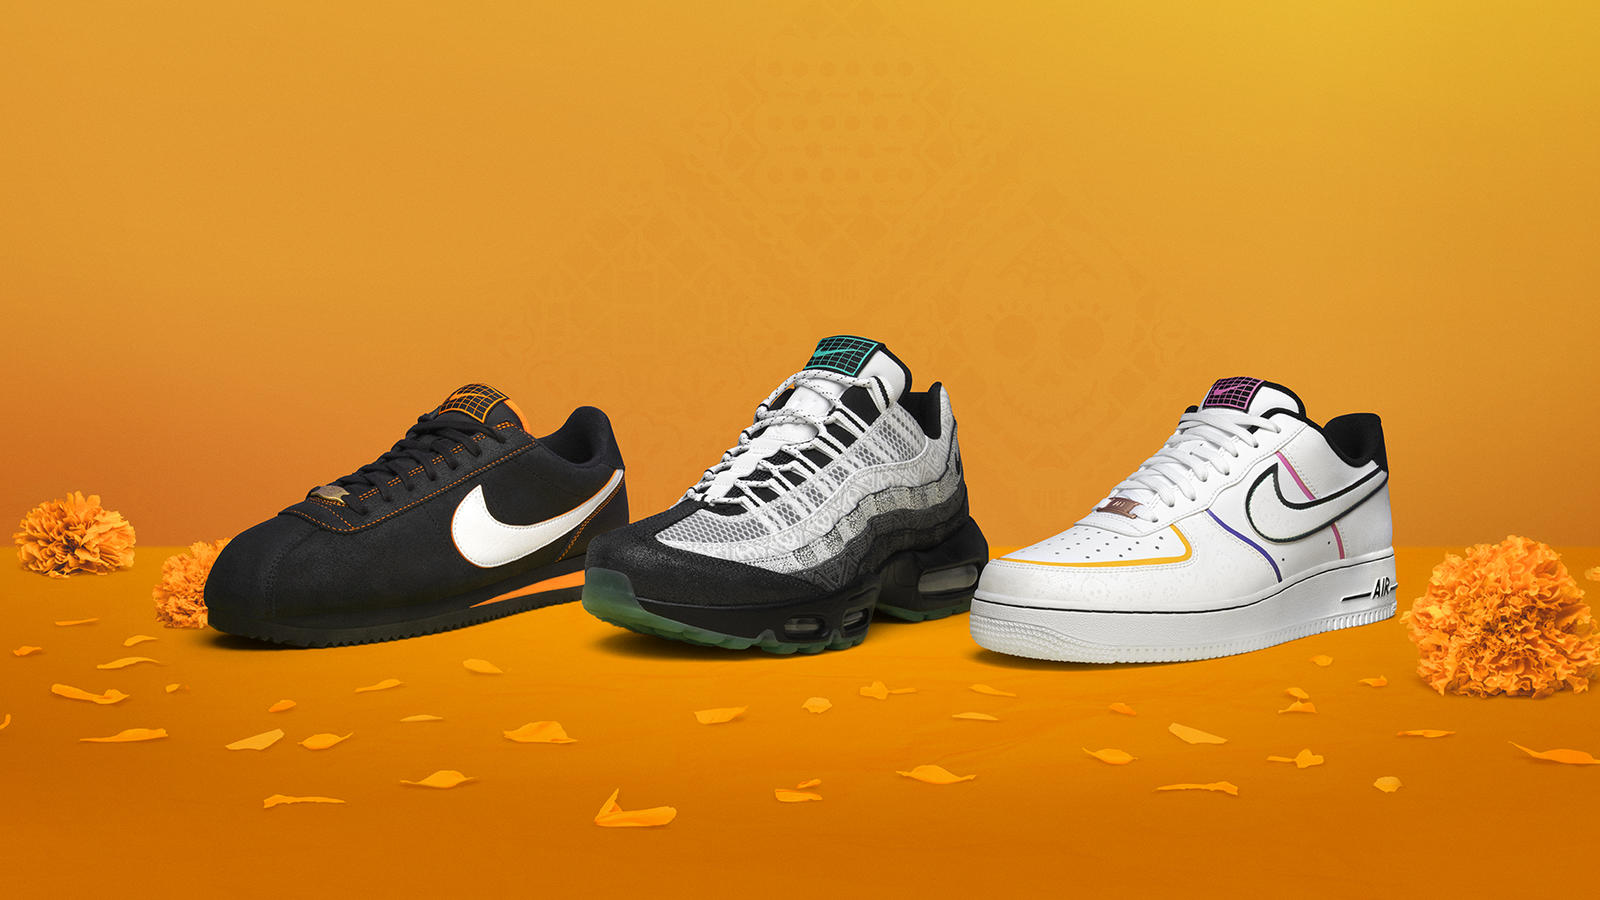 nike-dia-de-los-muertos-day-of-the-dead-pack-official-release-details